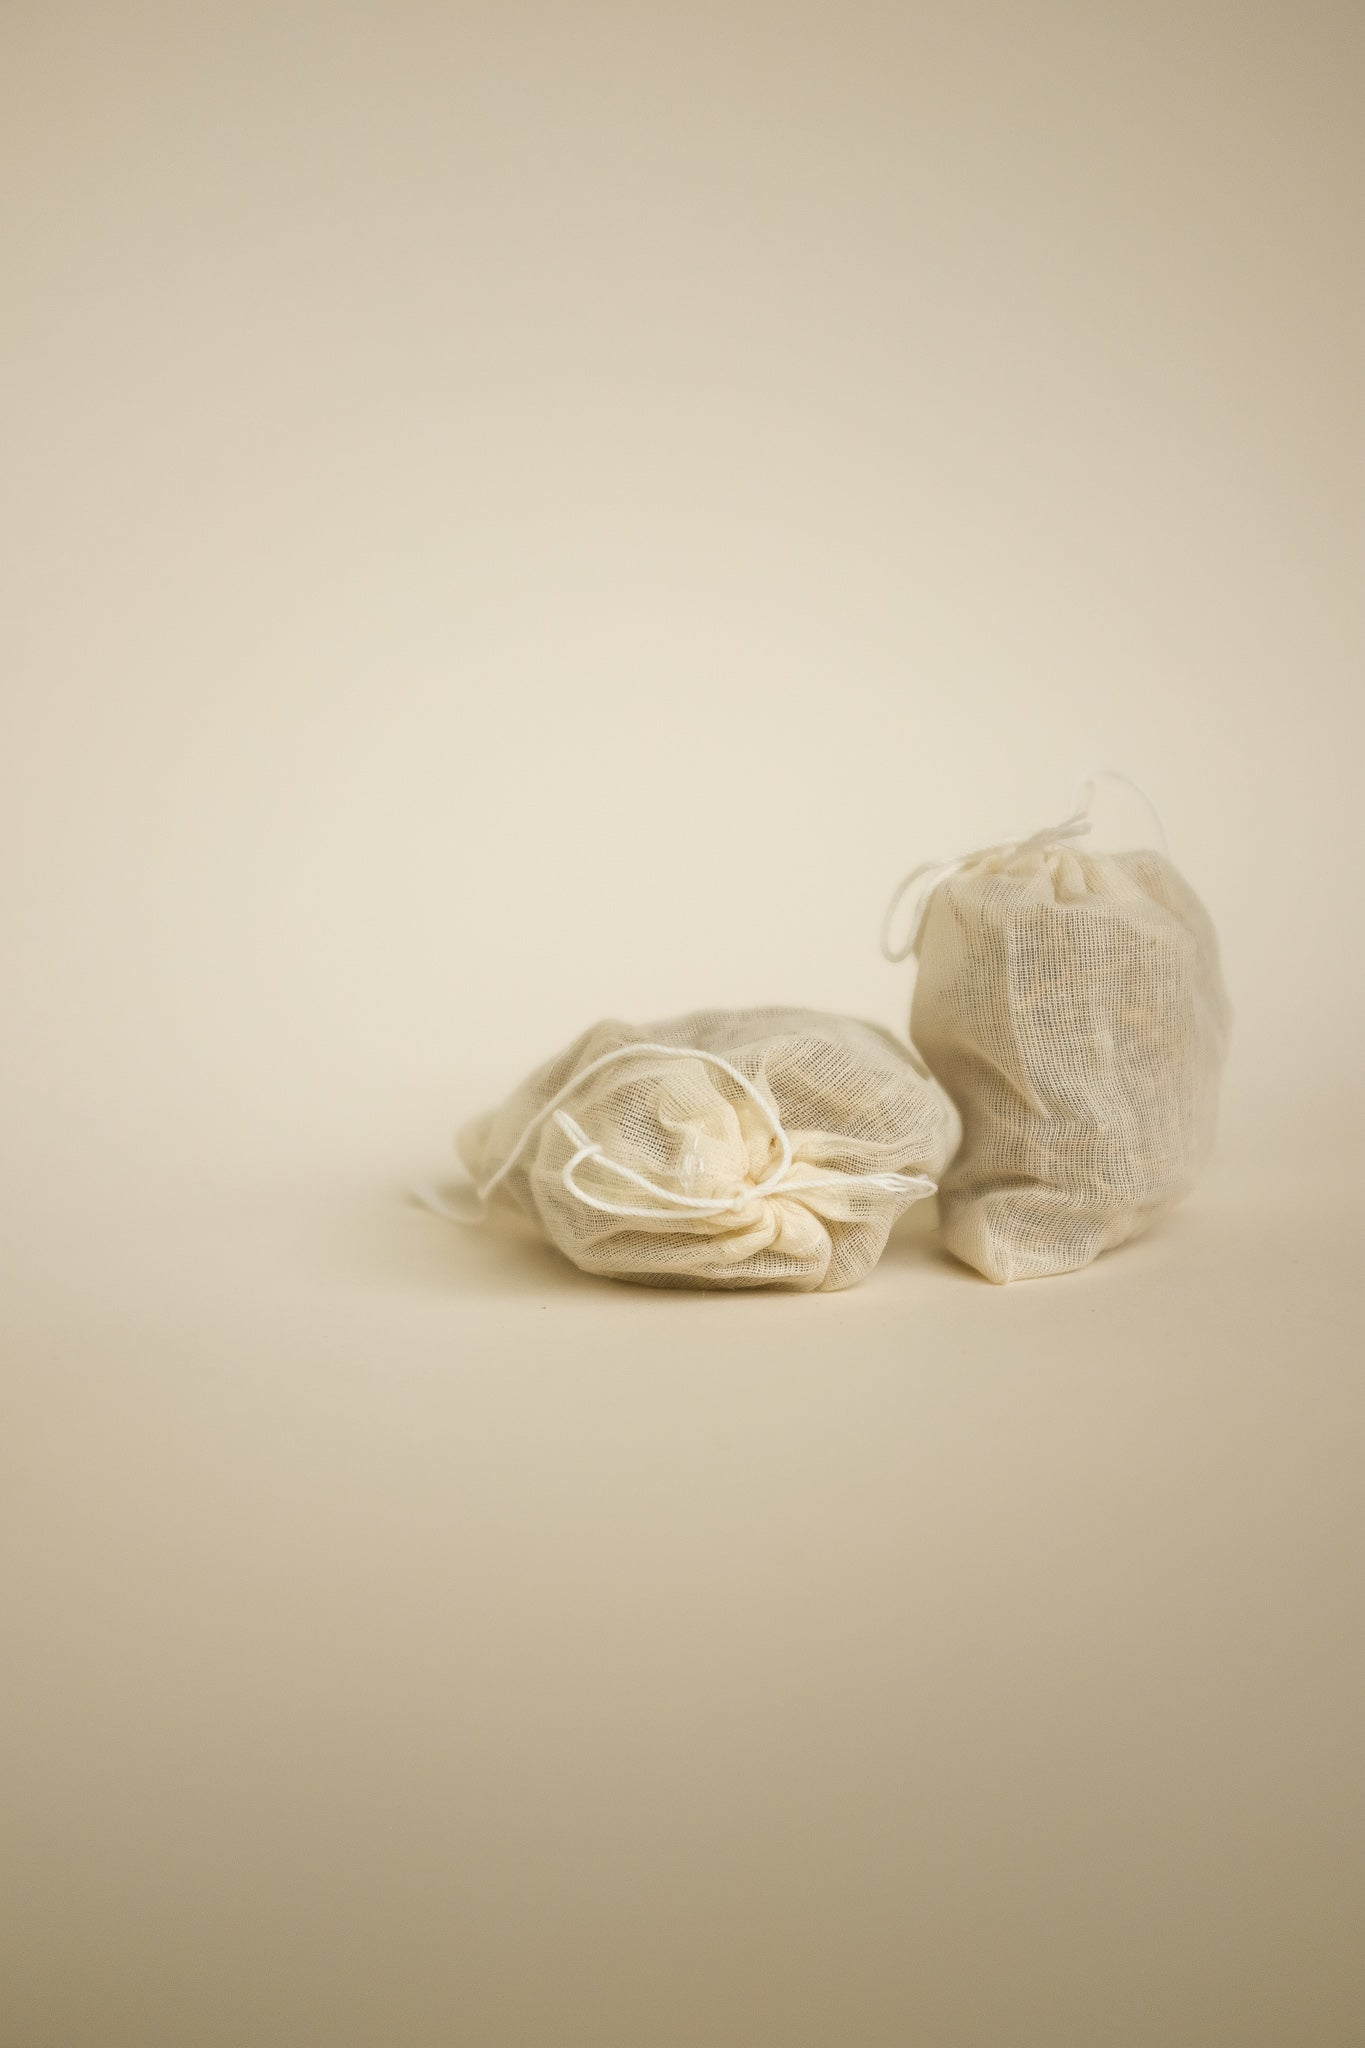 Haitian Vetiver Root Bath Sachets